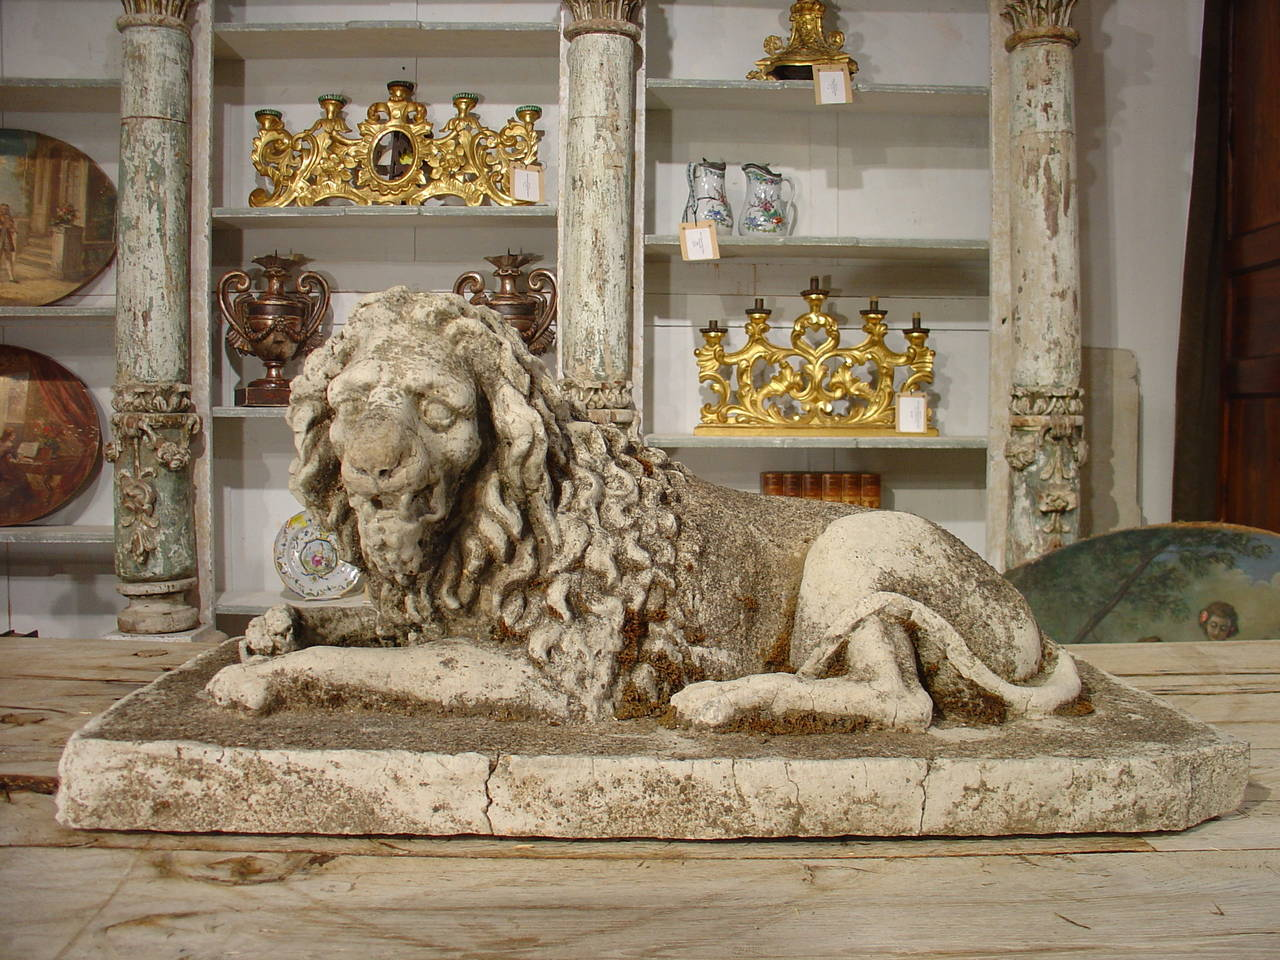 Antique Stone Lion Statue from France, circa 1860 For Sale 3